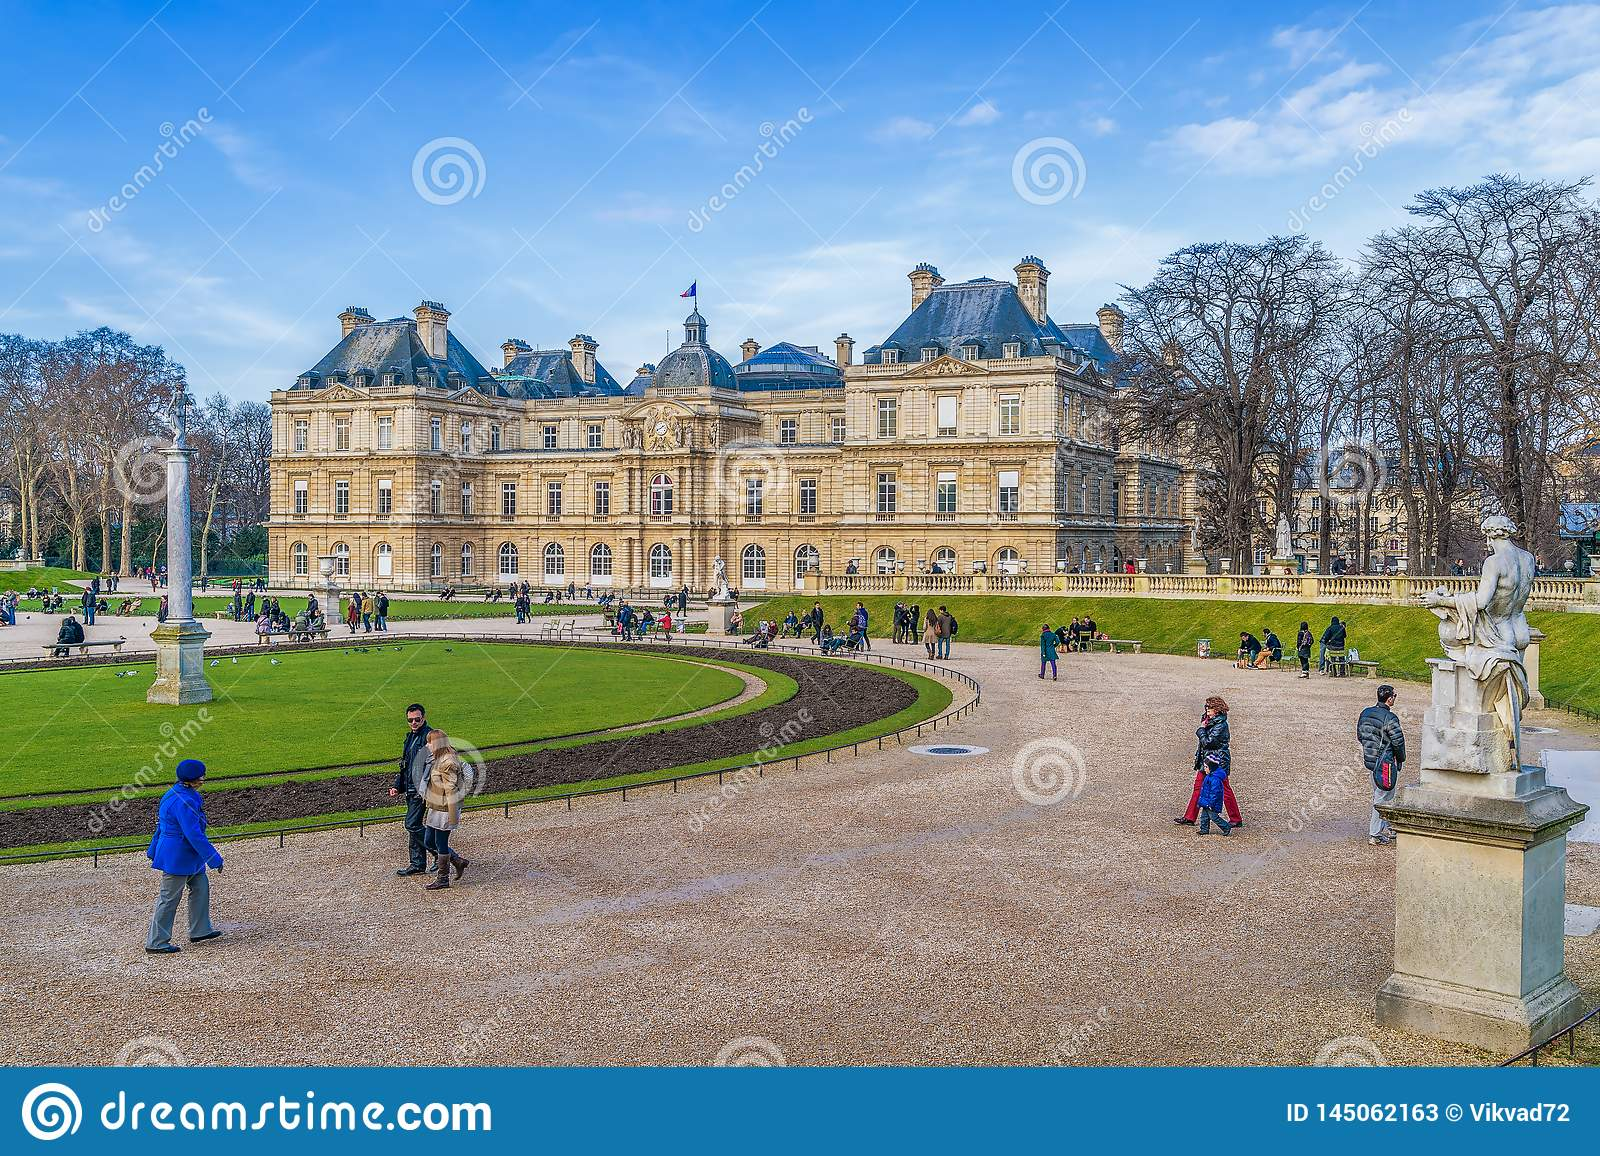 Historic Luxembourg Palace and Garden in winter.Paris.France